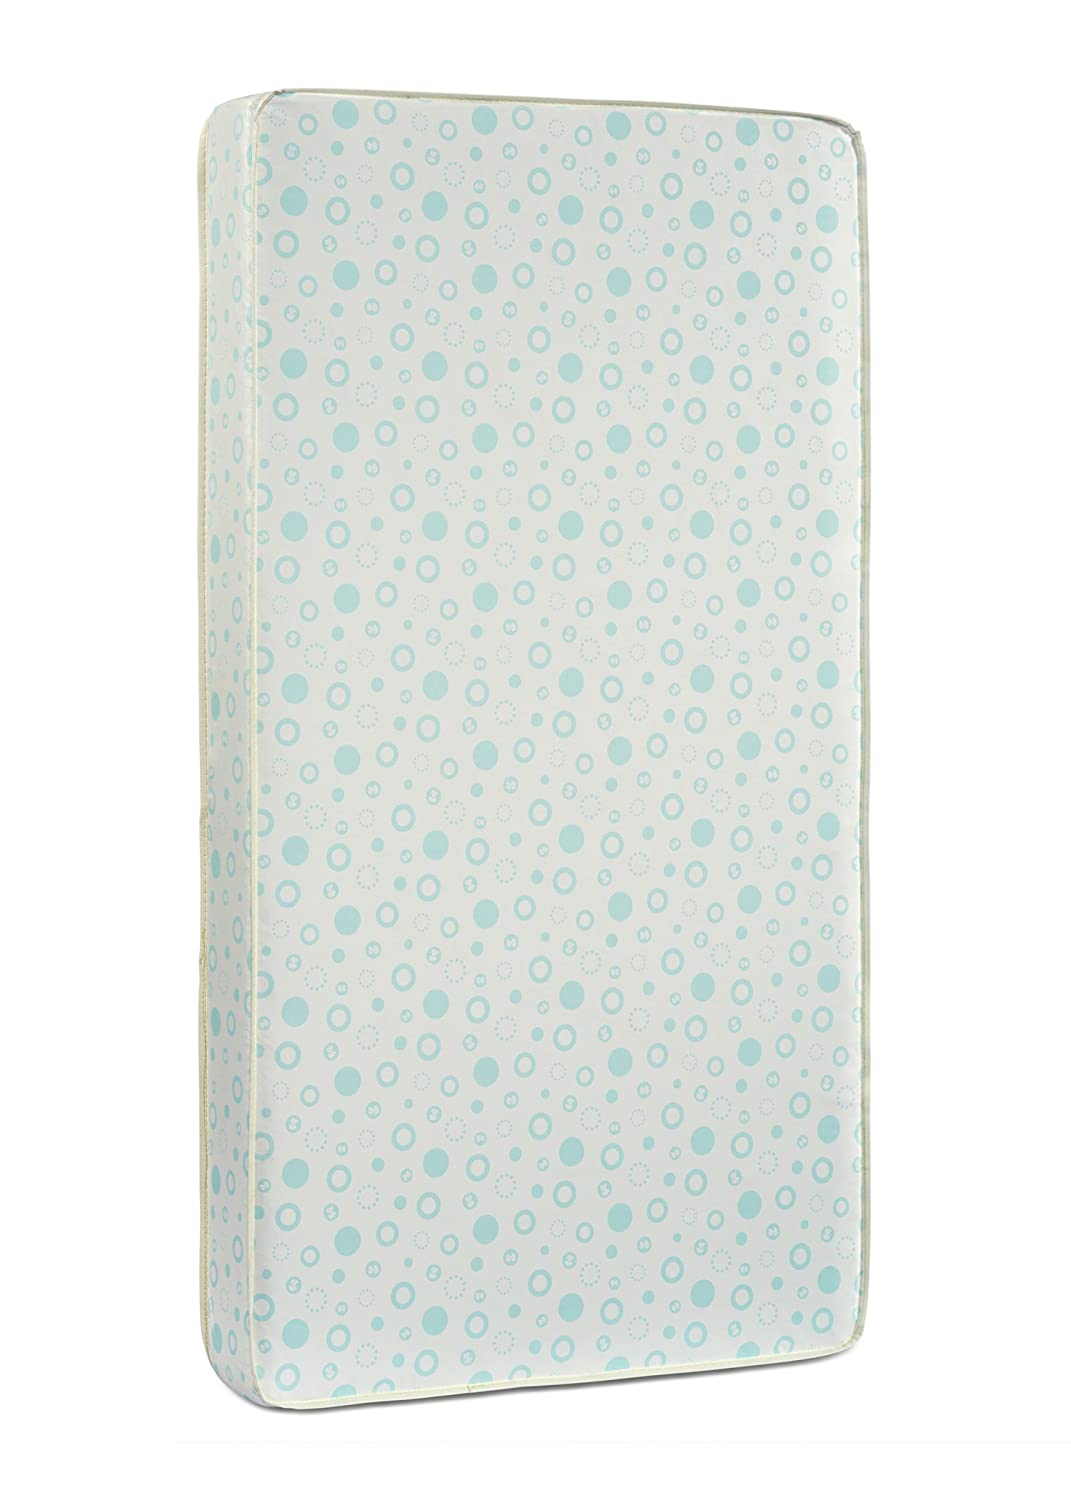 Fisher-Price Beddy Bye Foam Crib Mattress 81055130